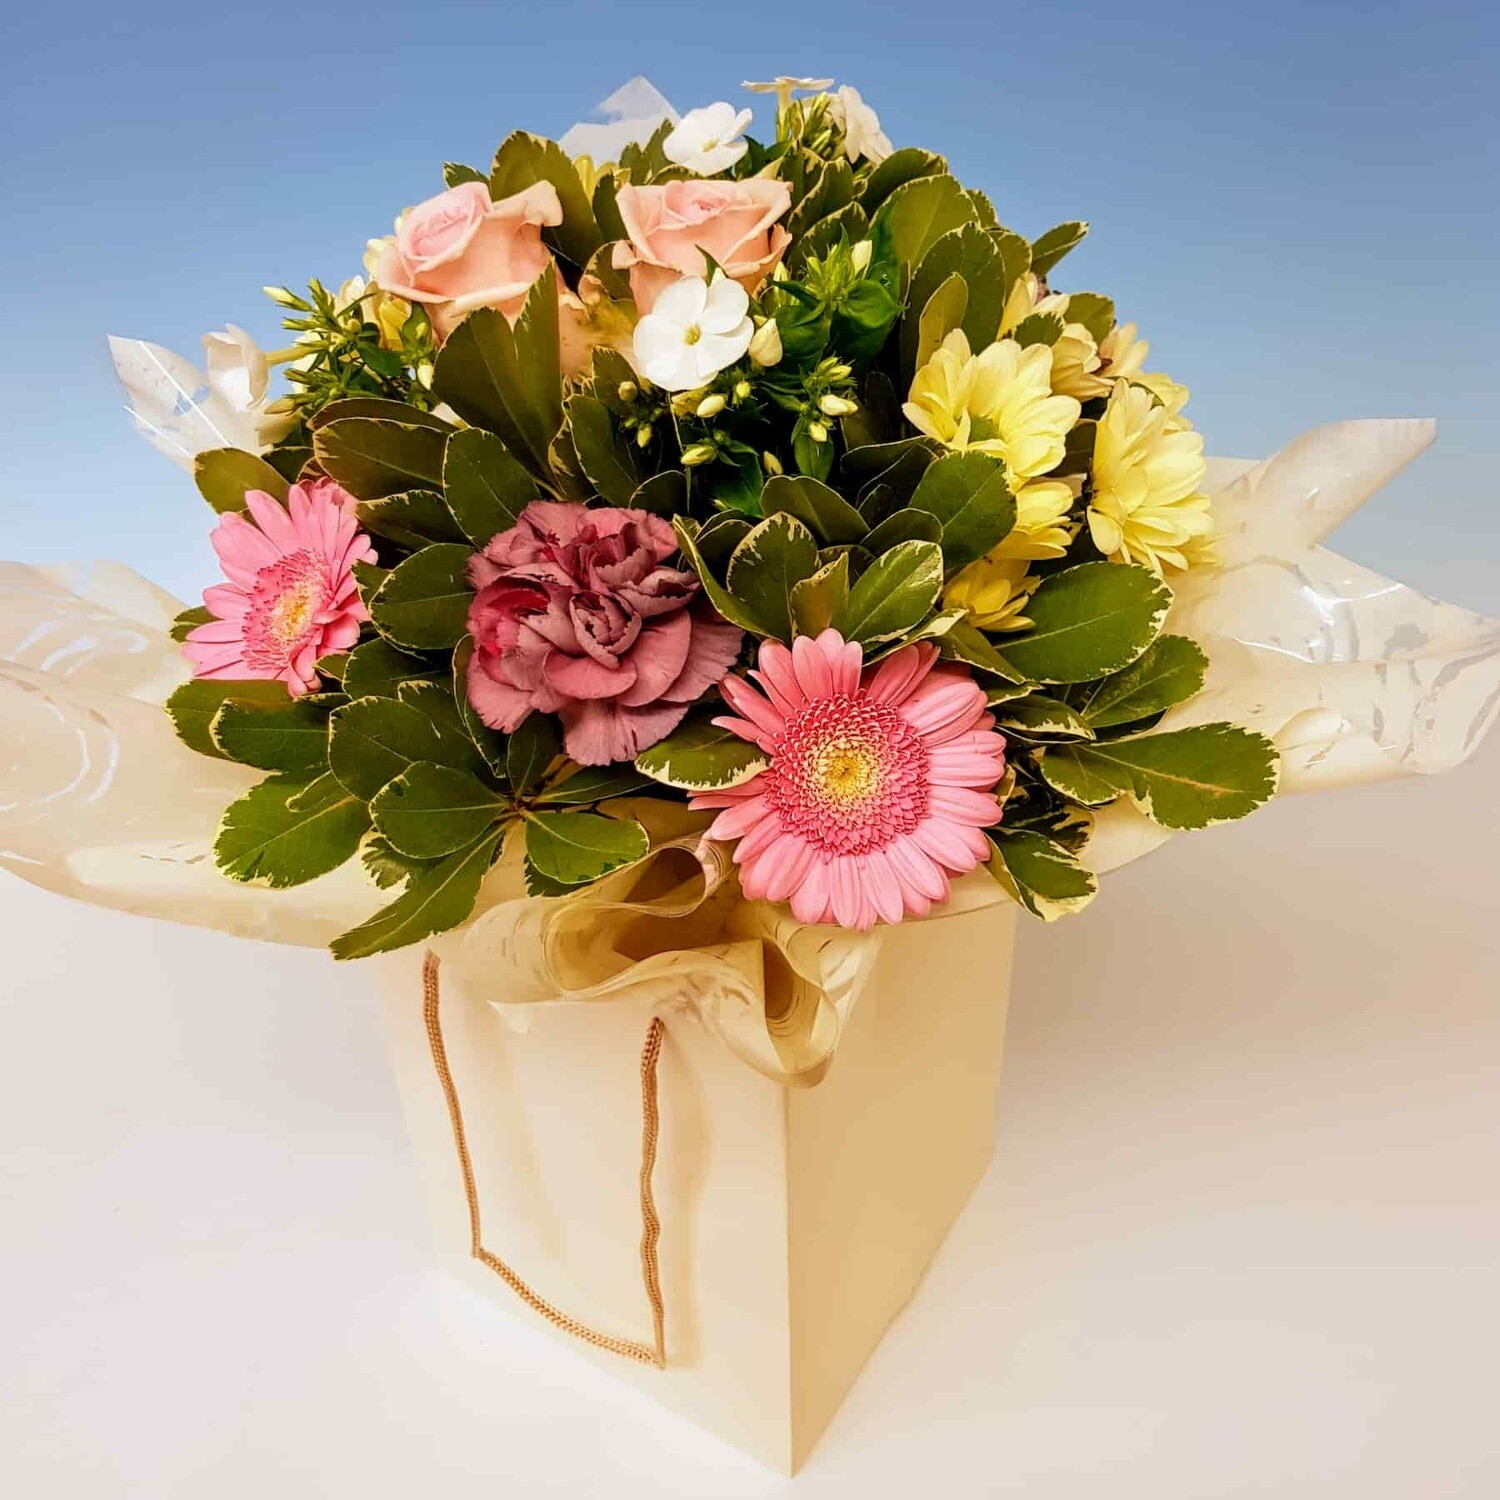 Florist Choice Flower Bag.